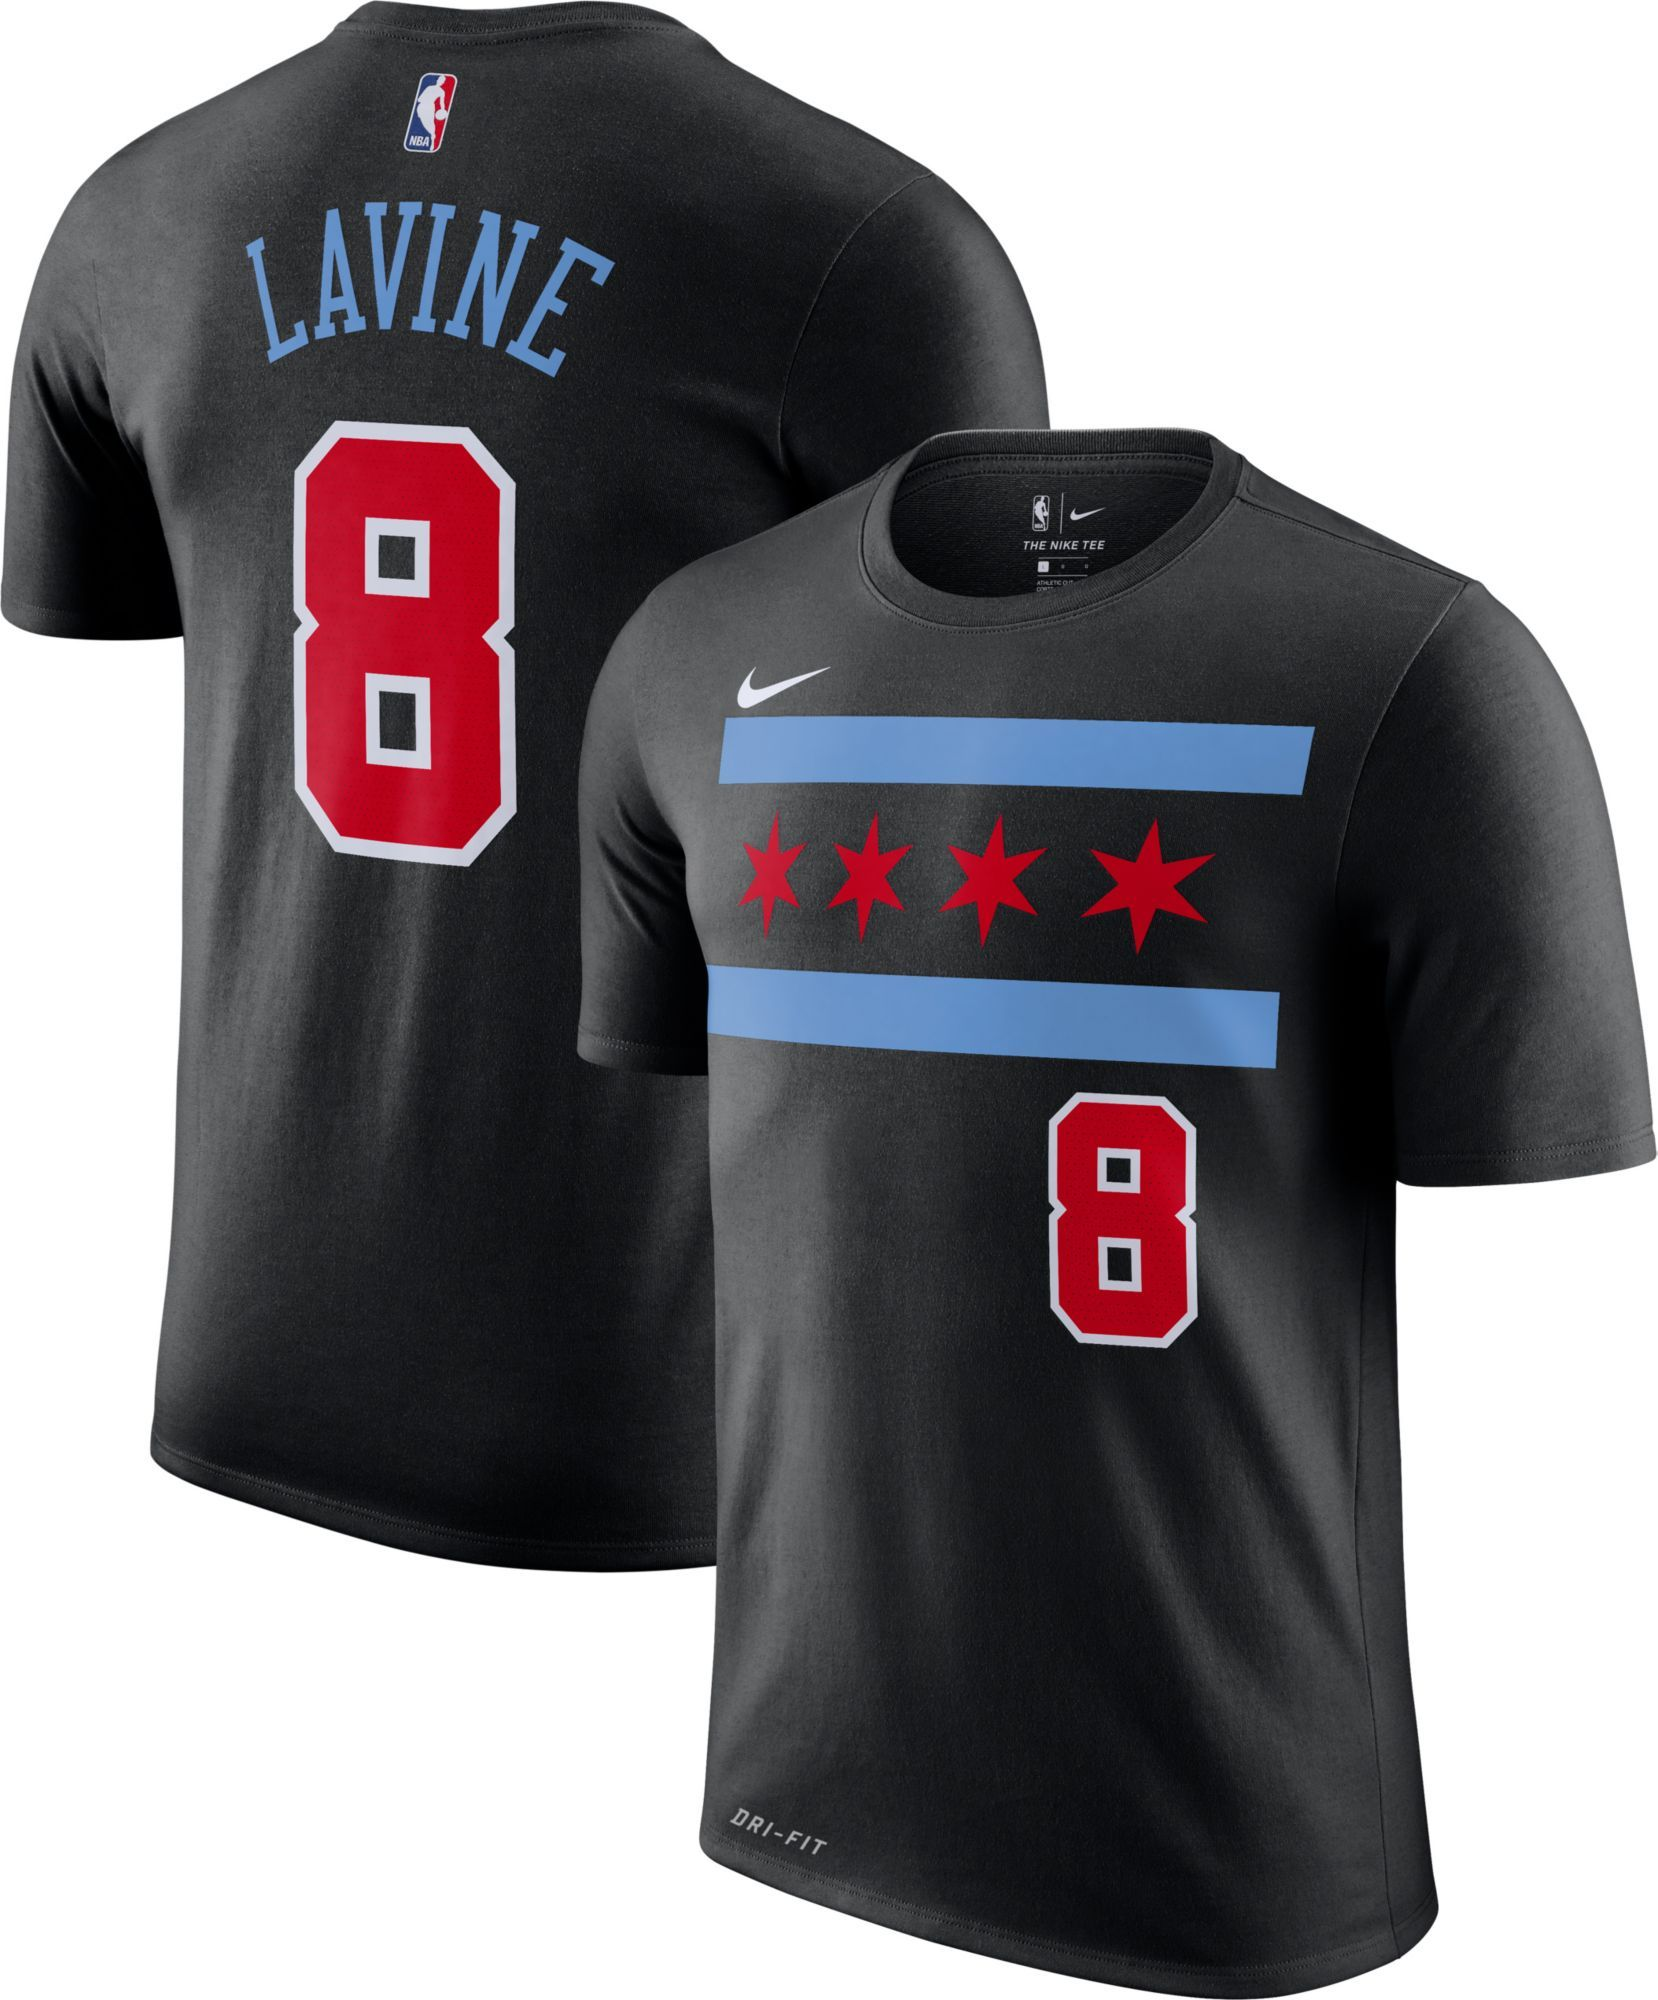 buy online 1f0c0 aaca2 Nike Youth Chicago Bulls Zach LaVine Dri-FIT City Edition T ...